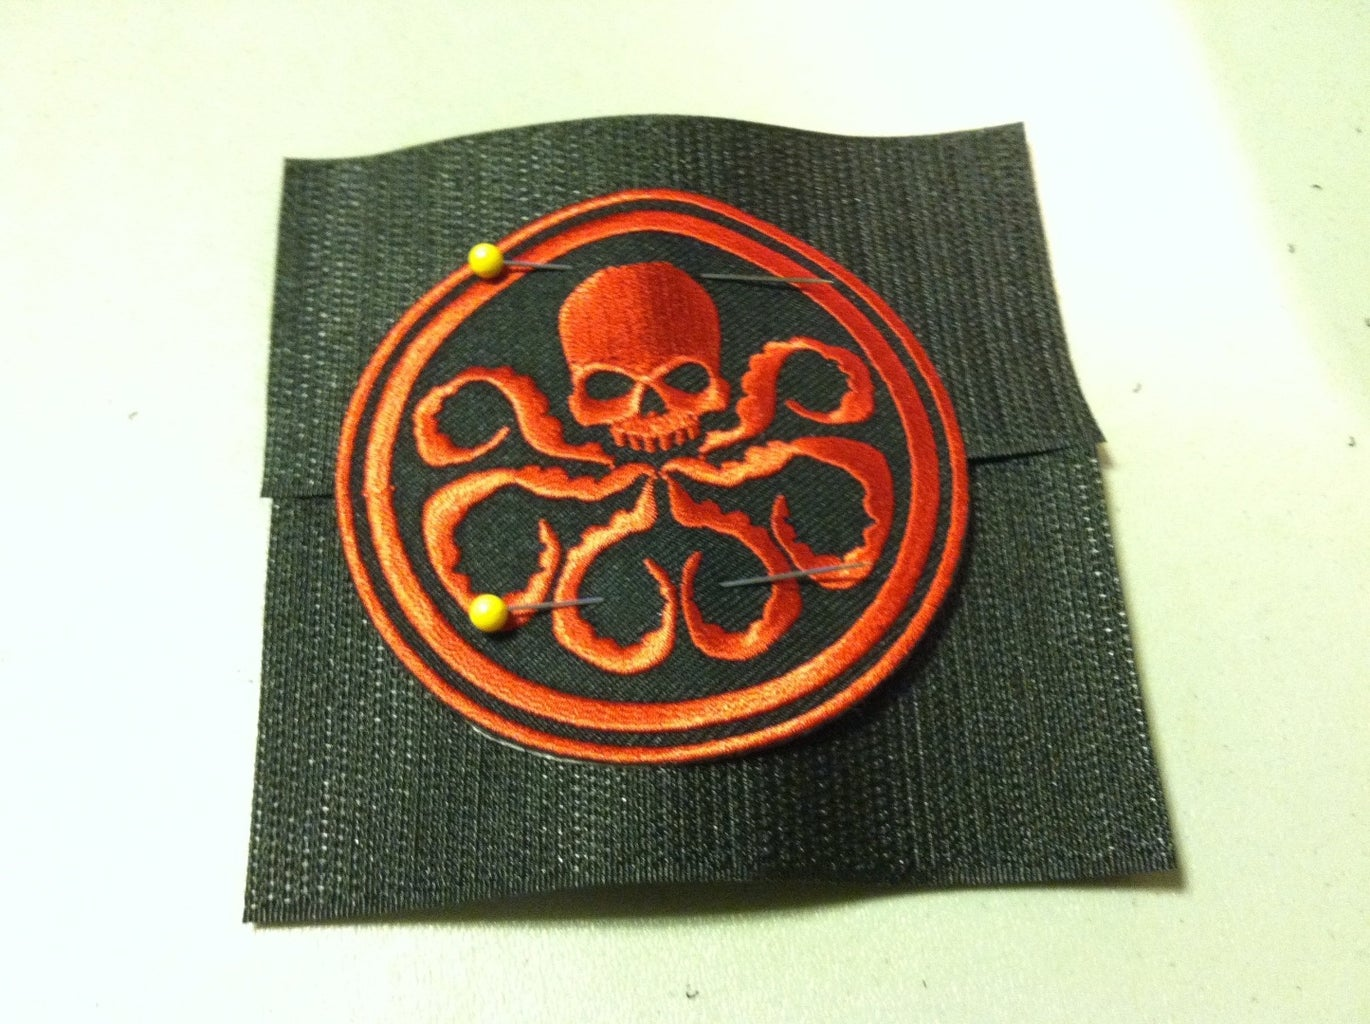 Adding Velcro Hook to Patches.